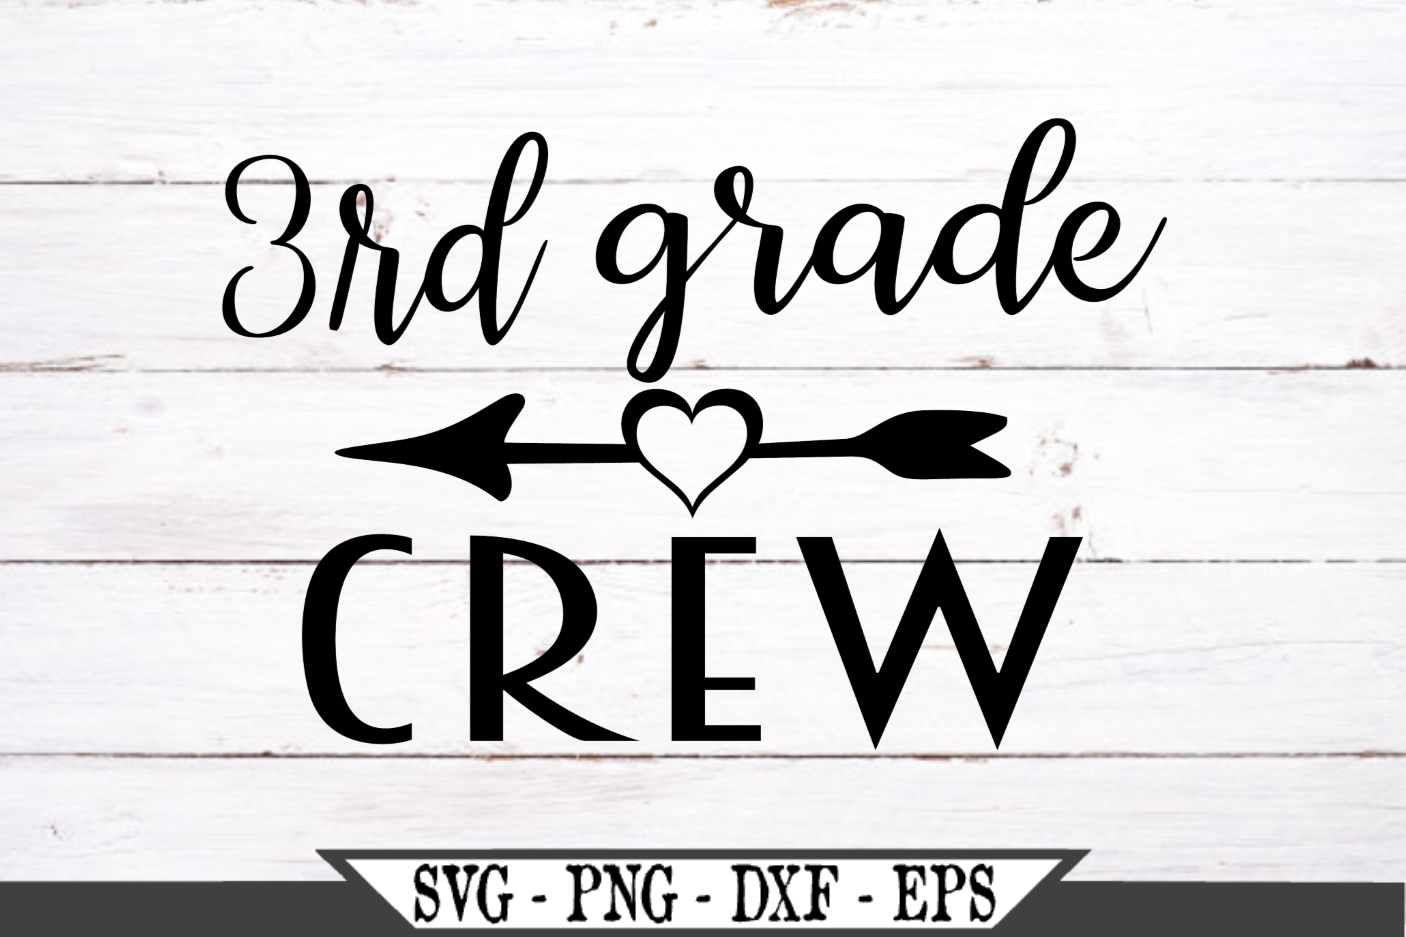 Download Free 3rd Grade Crew Svg Cut File Graphic By Crafters Market Co for Cricut Explore, Silhouette and other cutting machines.